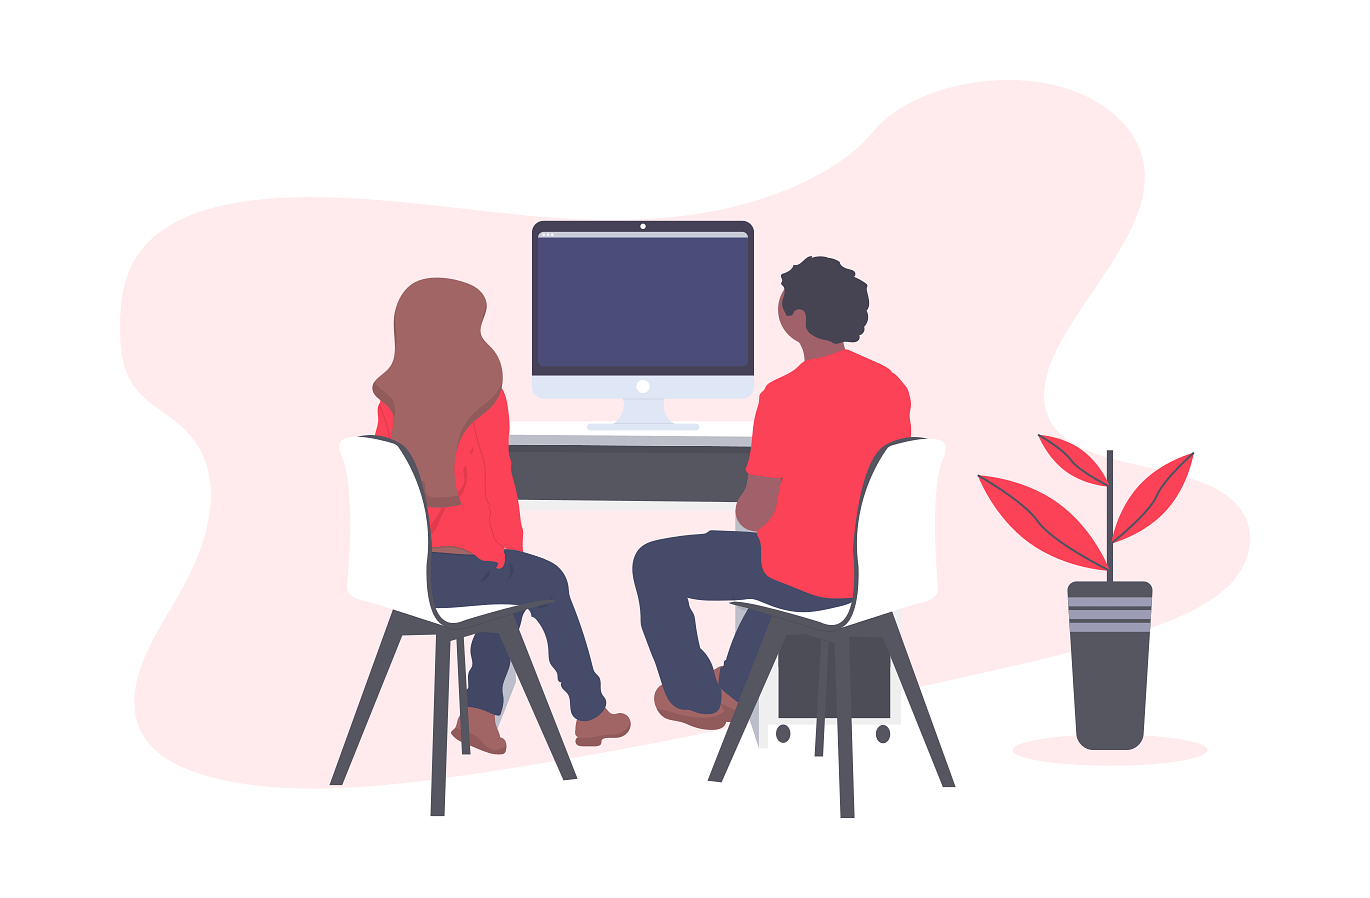 illustration of two people sitting at computer